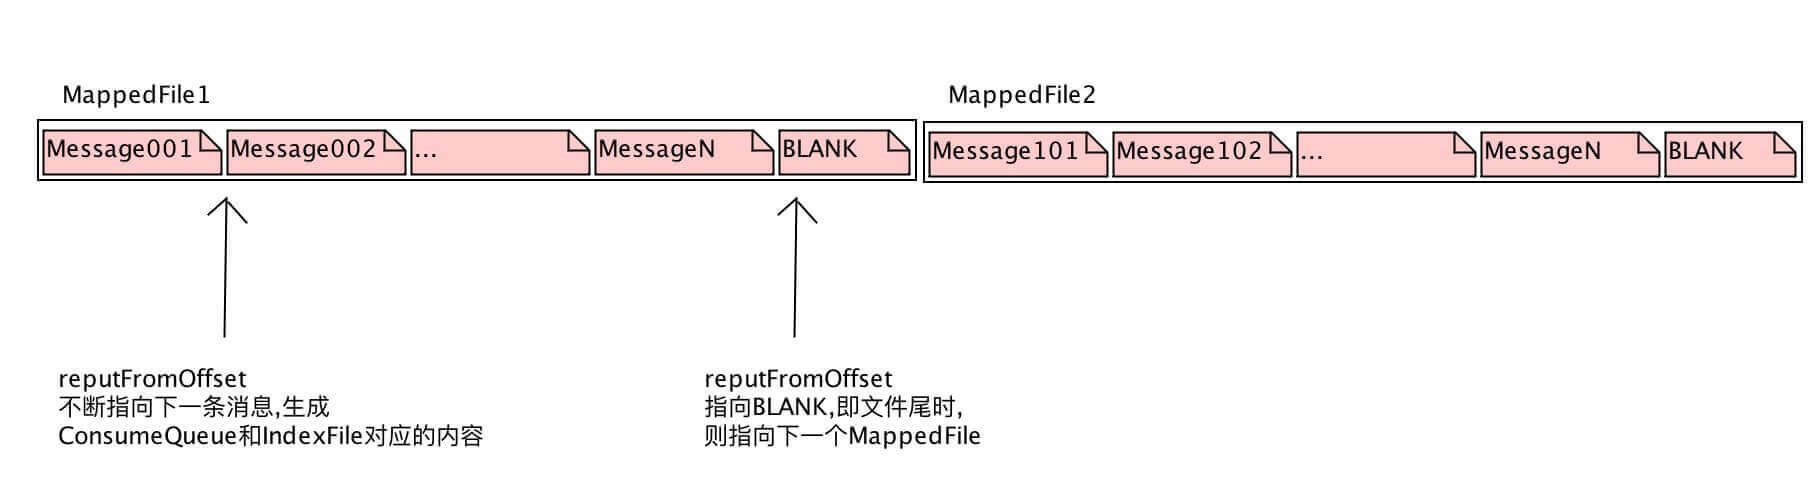 ReputMessageService用例图